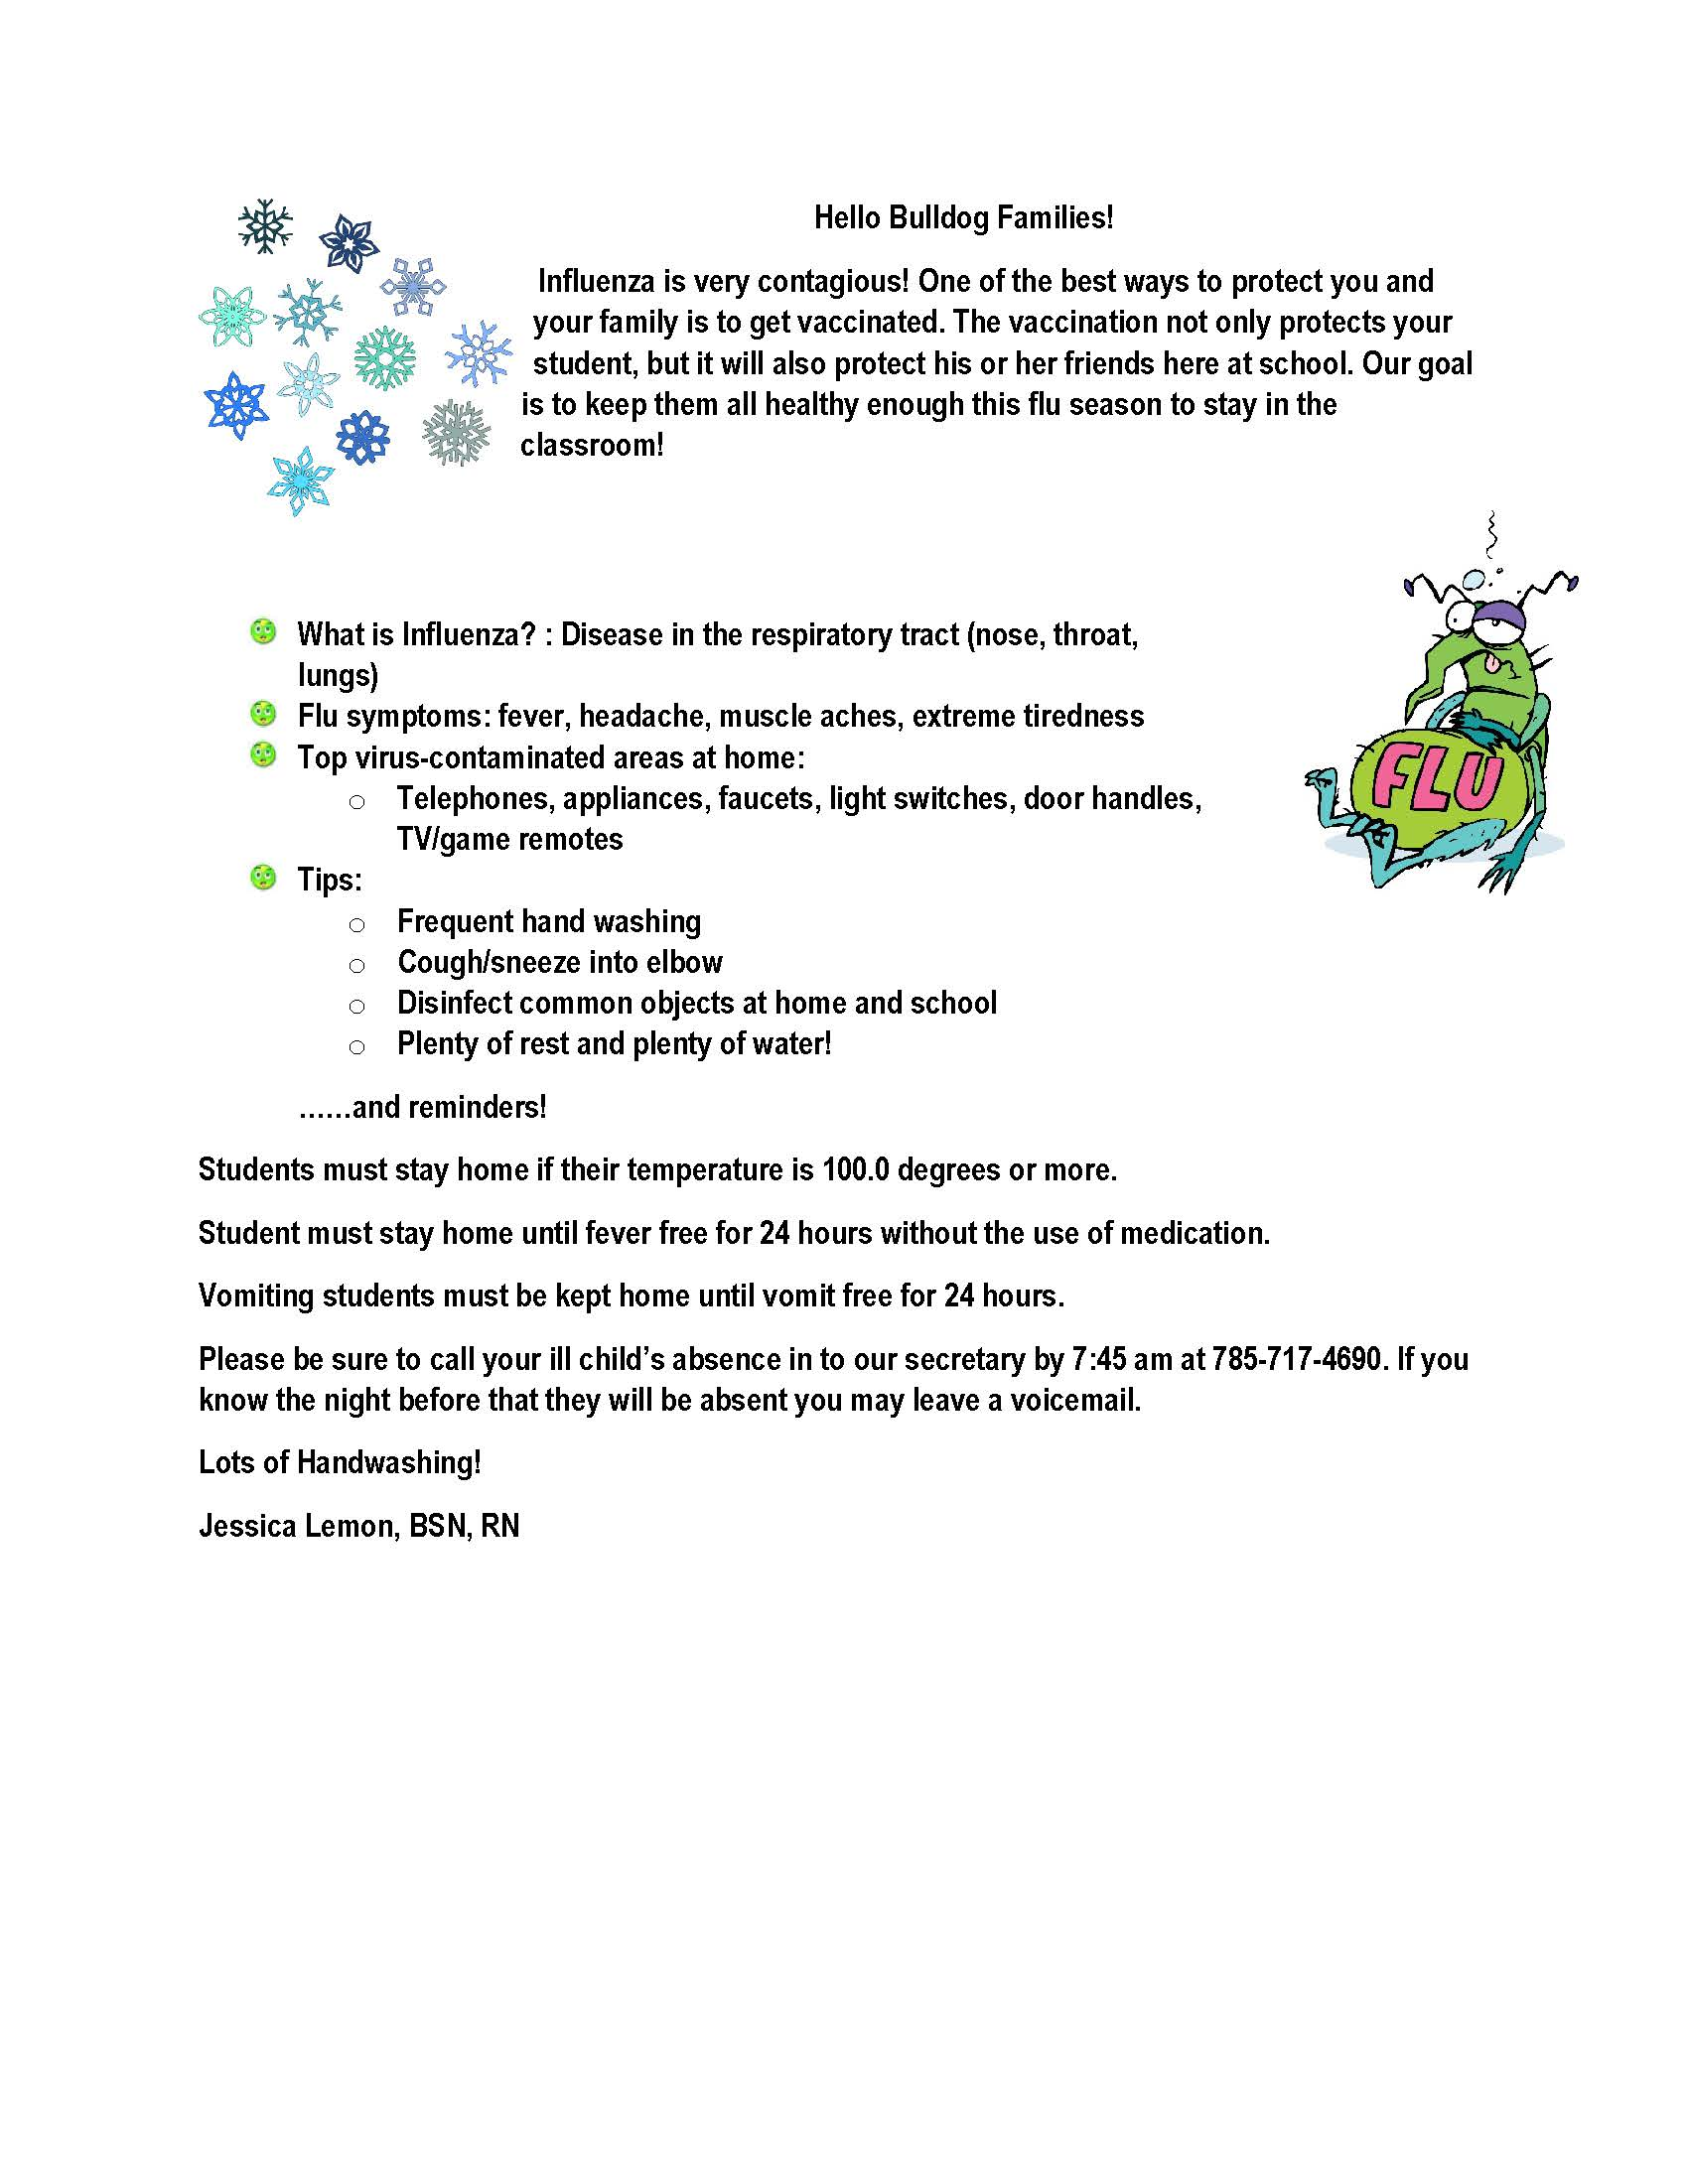 Letter about the flu